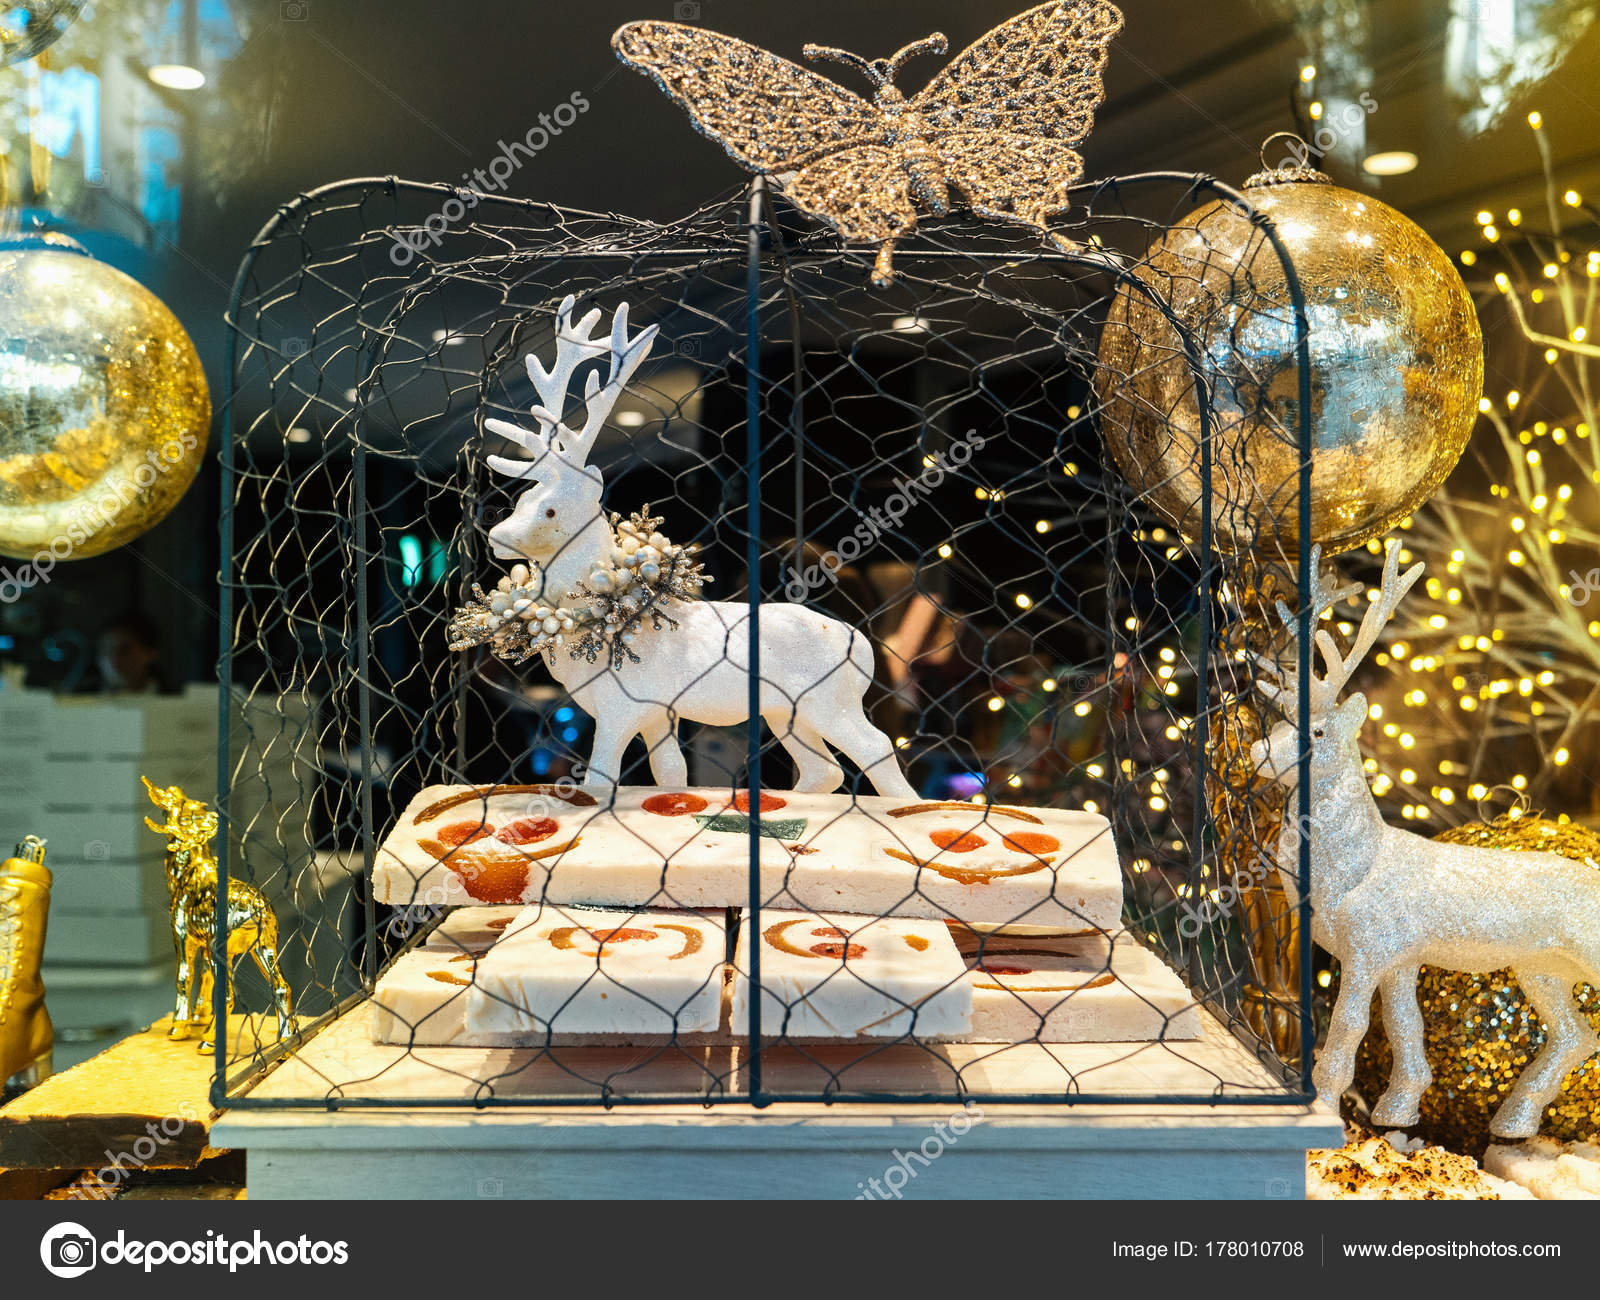 beautiful traditional christmas decorations of spanish bakery selling tartes and cakes with diverse figurines of reindeers santa and other characters